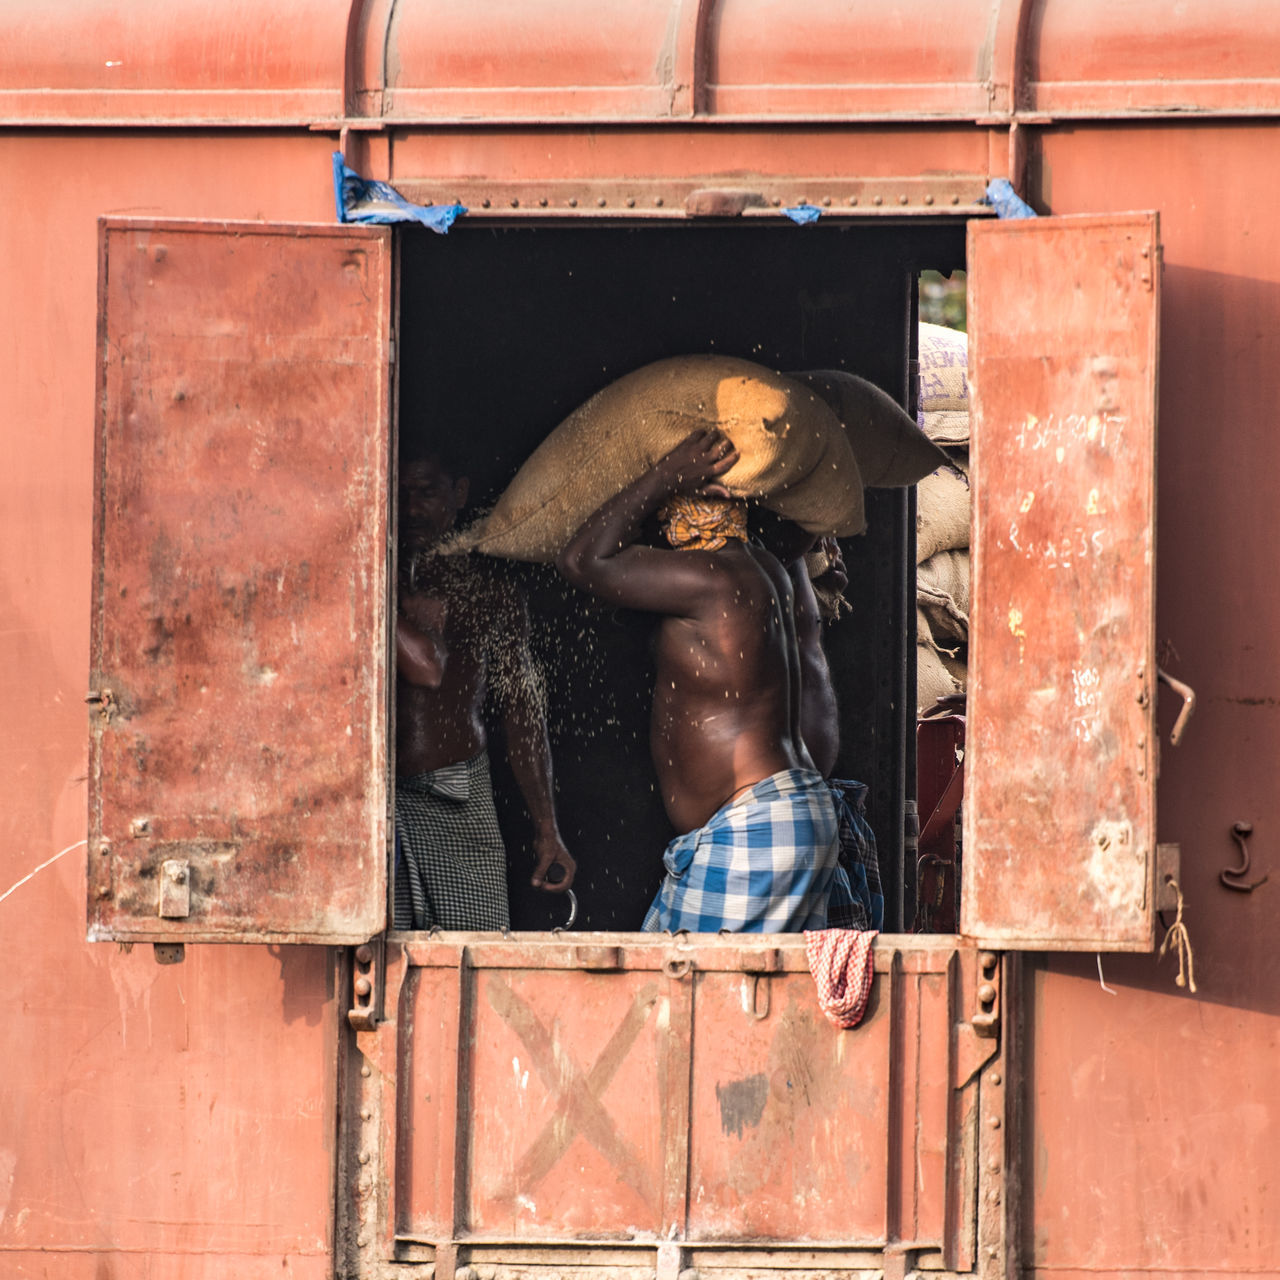 Unloading the train is hard manual labour. ASIA Day Goods India Indian Indian Railways Labour Men Outdoors People Rail Transportation Rice Southern Railways Sweat Trade Train Transportation Travel Unloading Work Working Working Hard